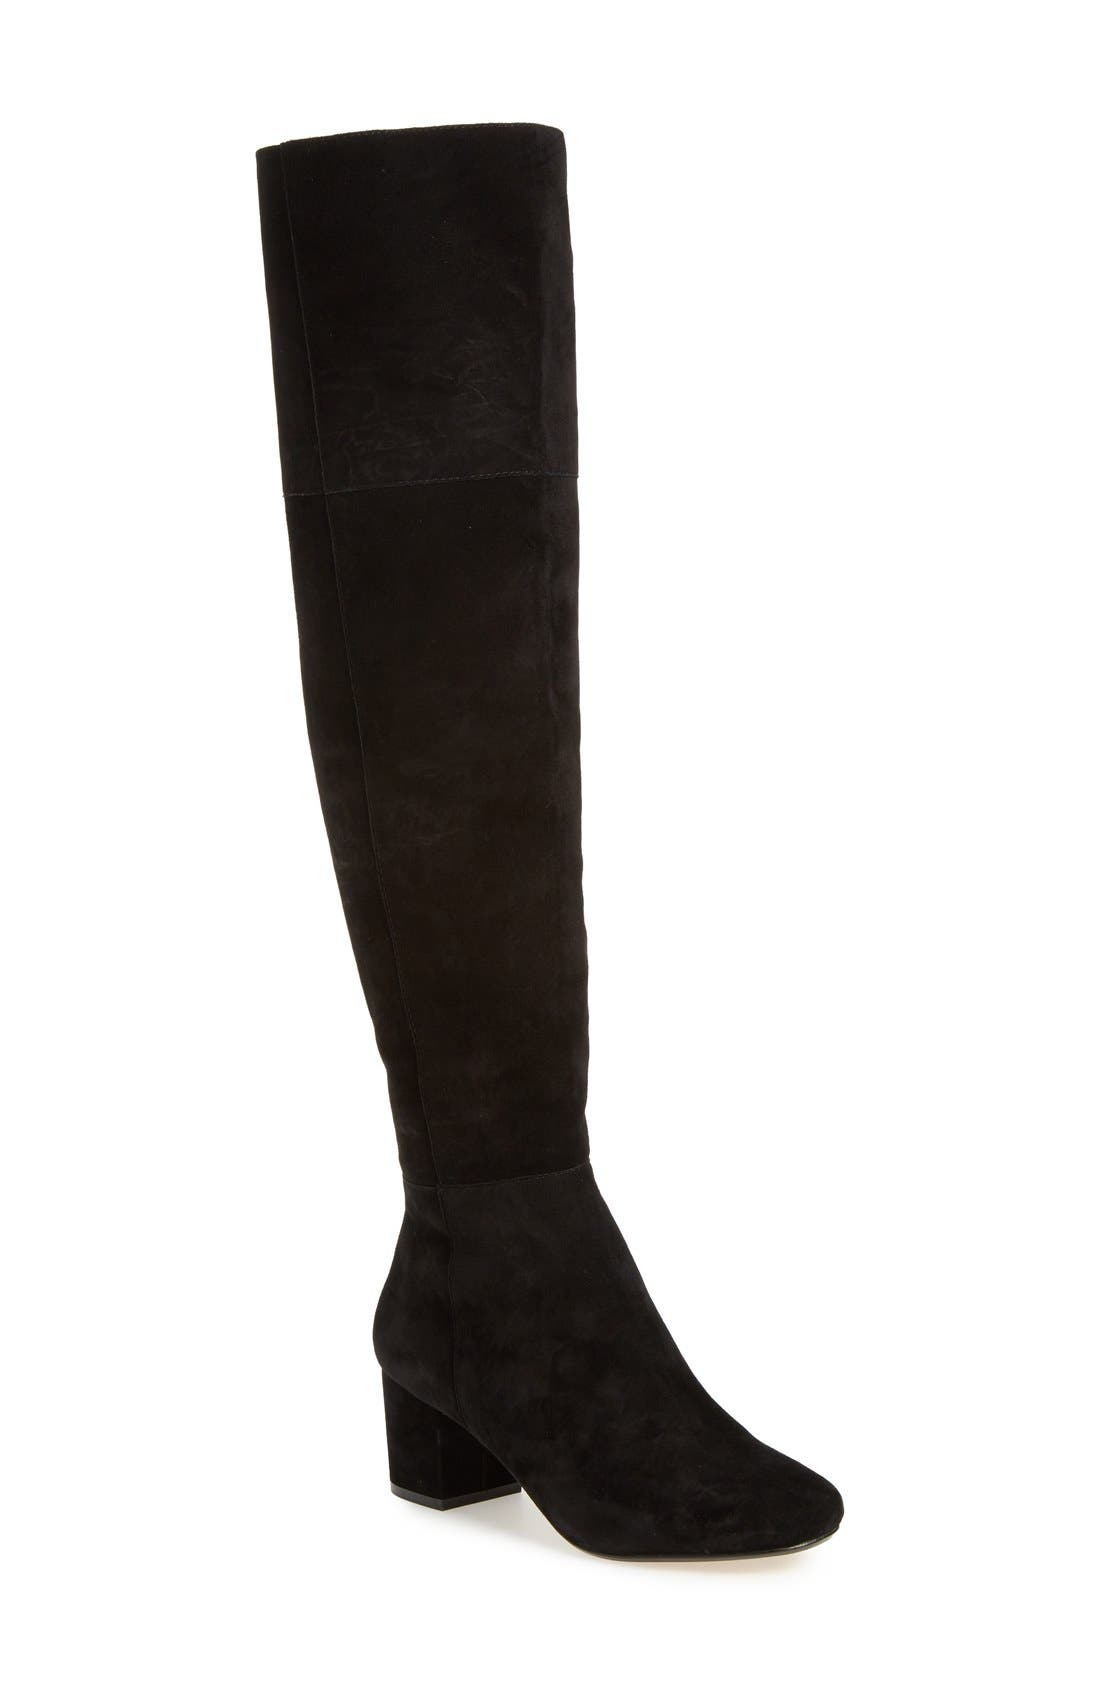 Main Image - Dune London 'Sanford' Tall Boot (Women)